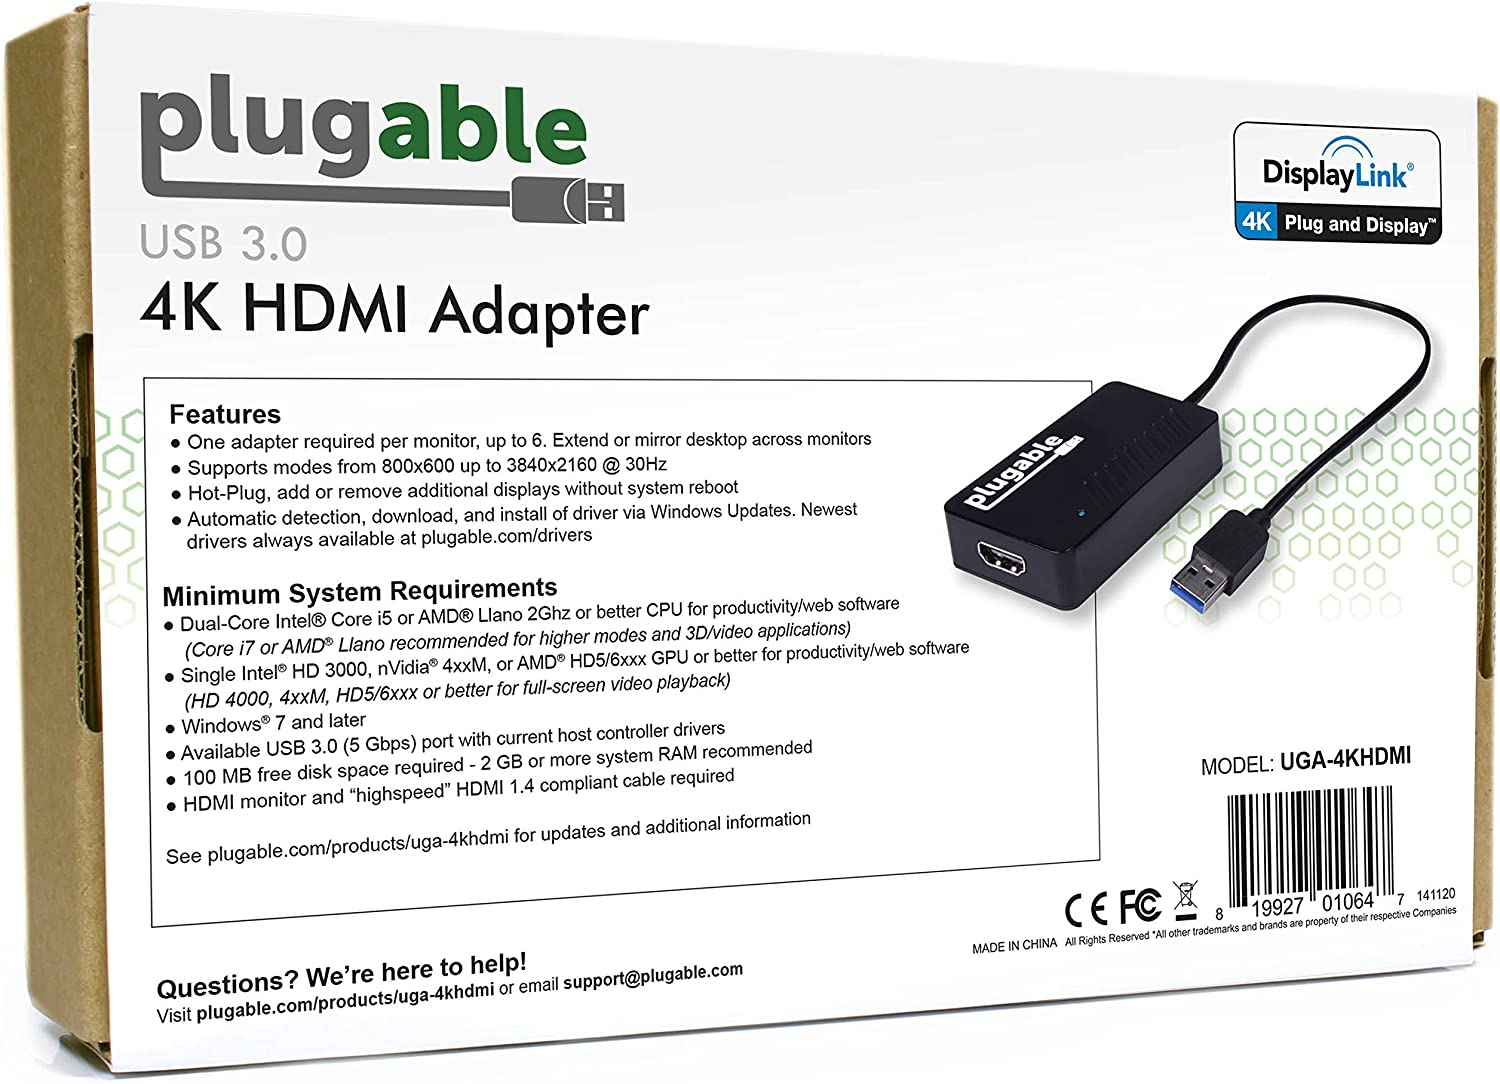 8.1 Plugable USB 3.0 to HDMI 4K UHD Video Graphics Adapter for Multiple Monitors up to 3840x2160 Supports Windows 10 7